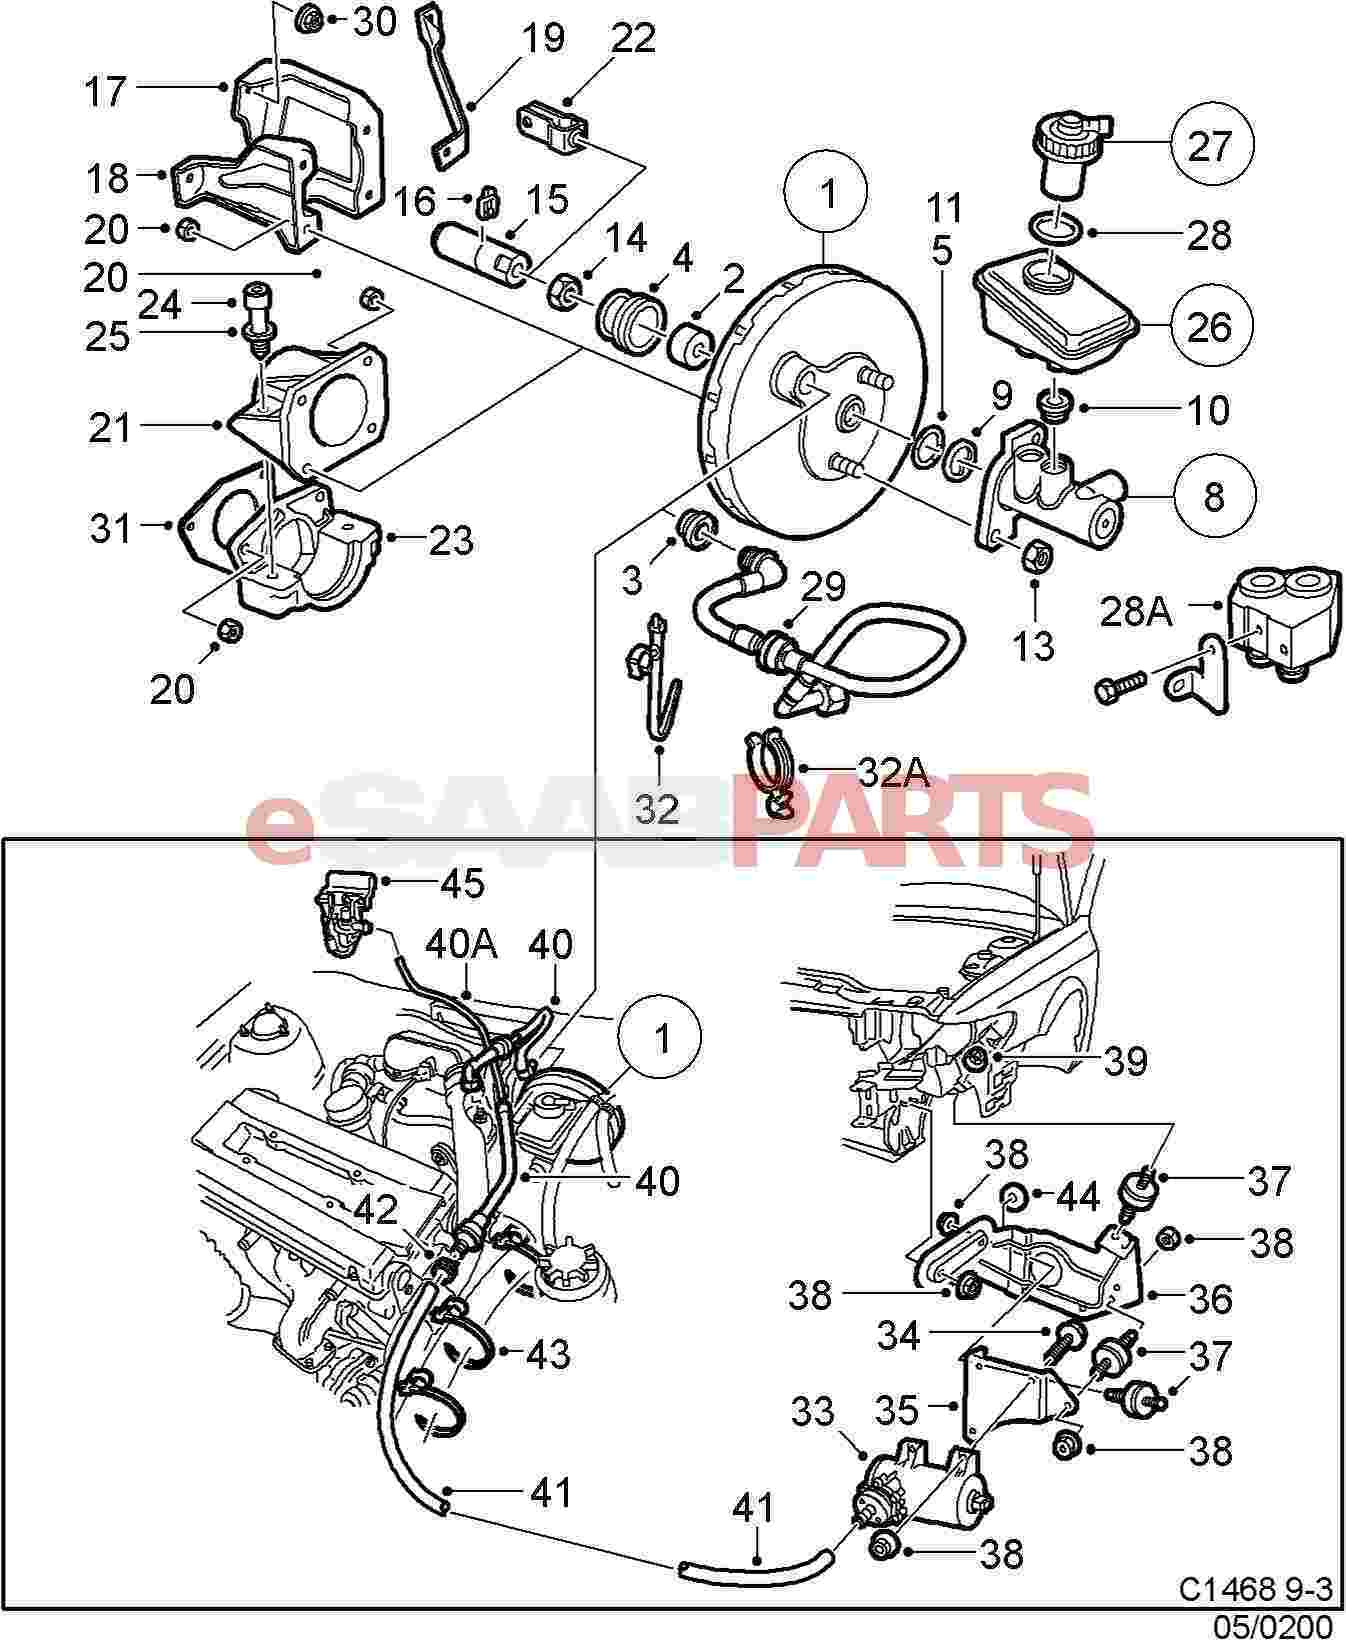 2007 Saab 9 3 Vacuum Diagram • Wiring Diagram For Free